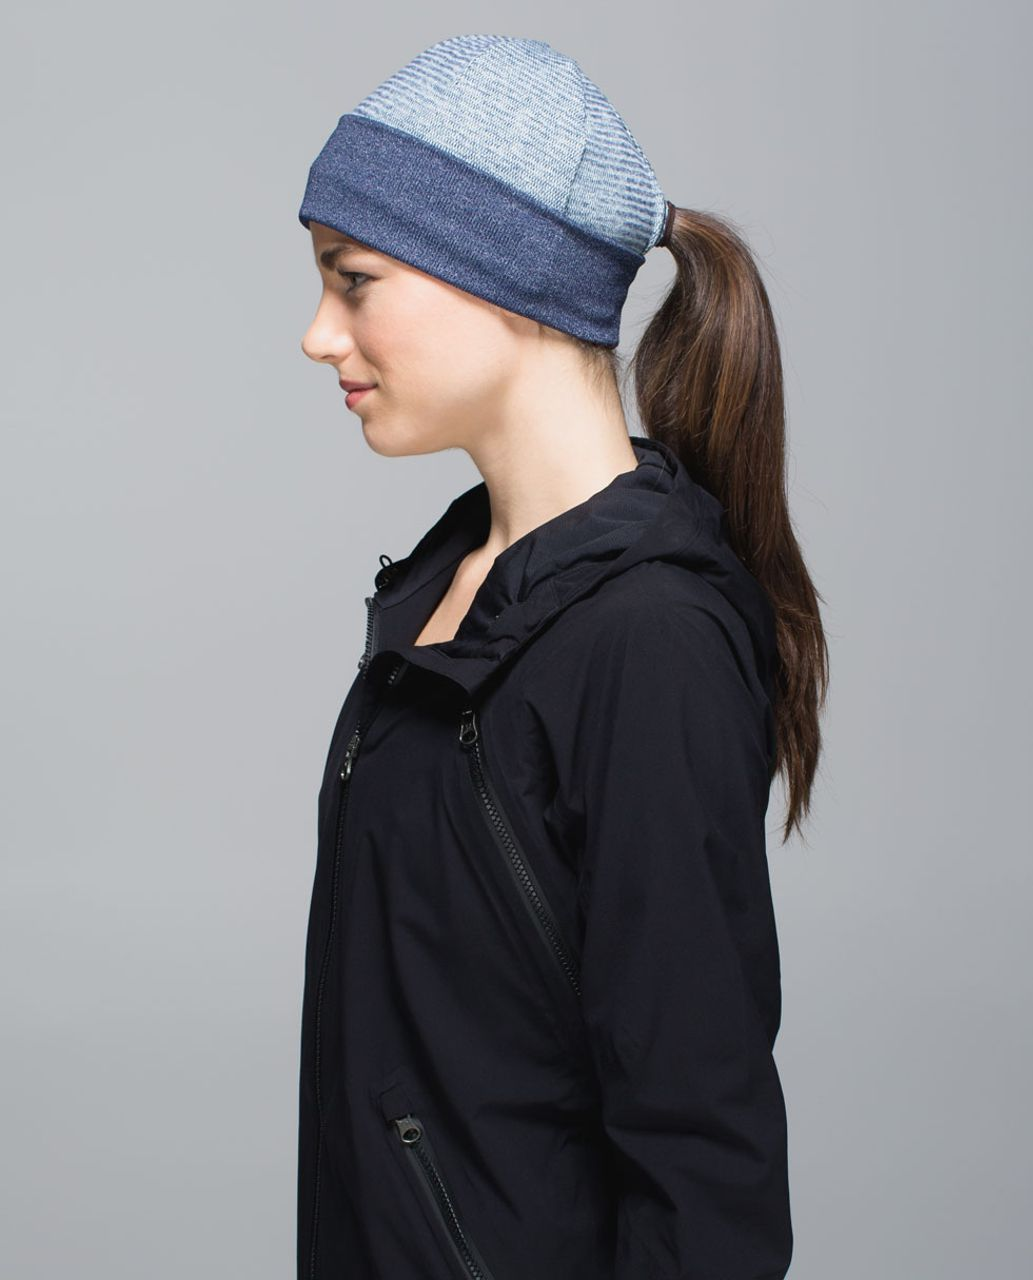 Lululemon Run With Me Toque - Mini Check Pique Sea Mist Heathered Deep Navy